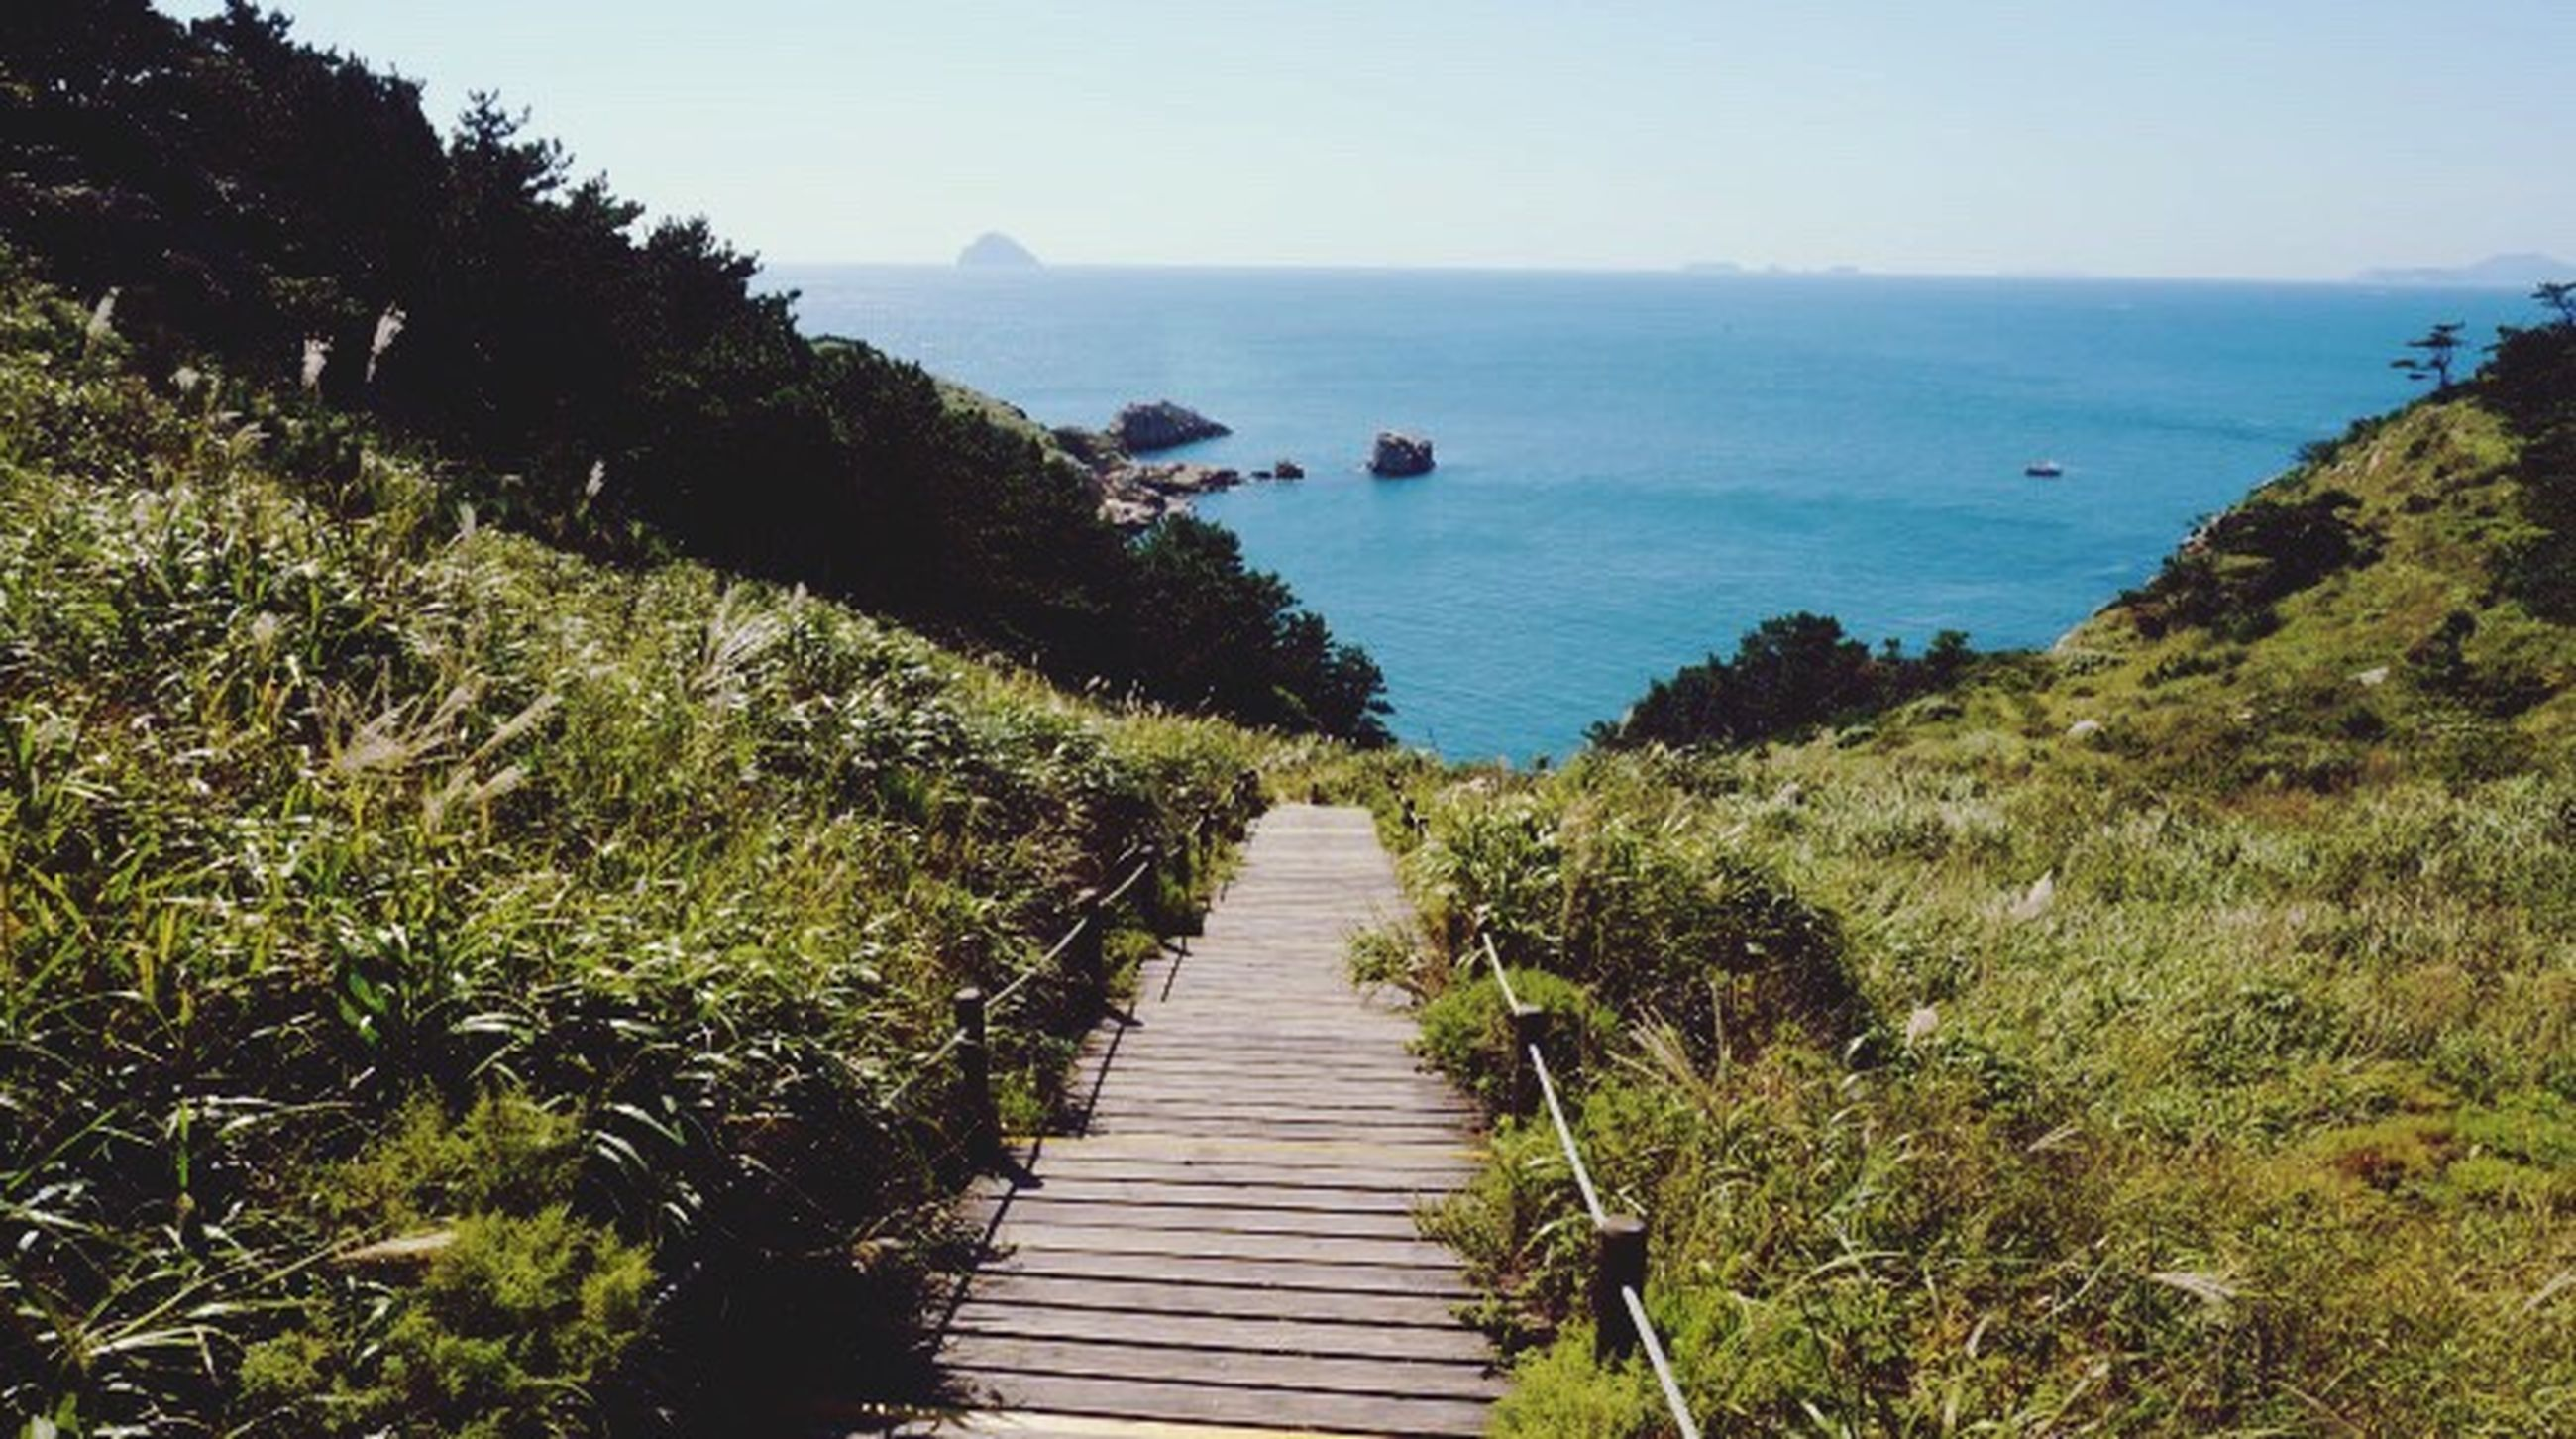 sea, nature, water, scenics, horizon over water, beach, outdoors, beauty in nature, the way forward, boardwalk, tranquility, tranquil scene, day, no people, sky